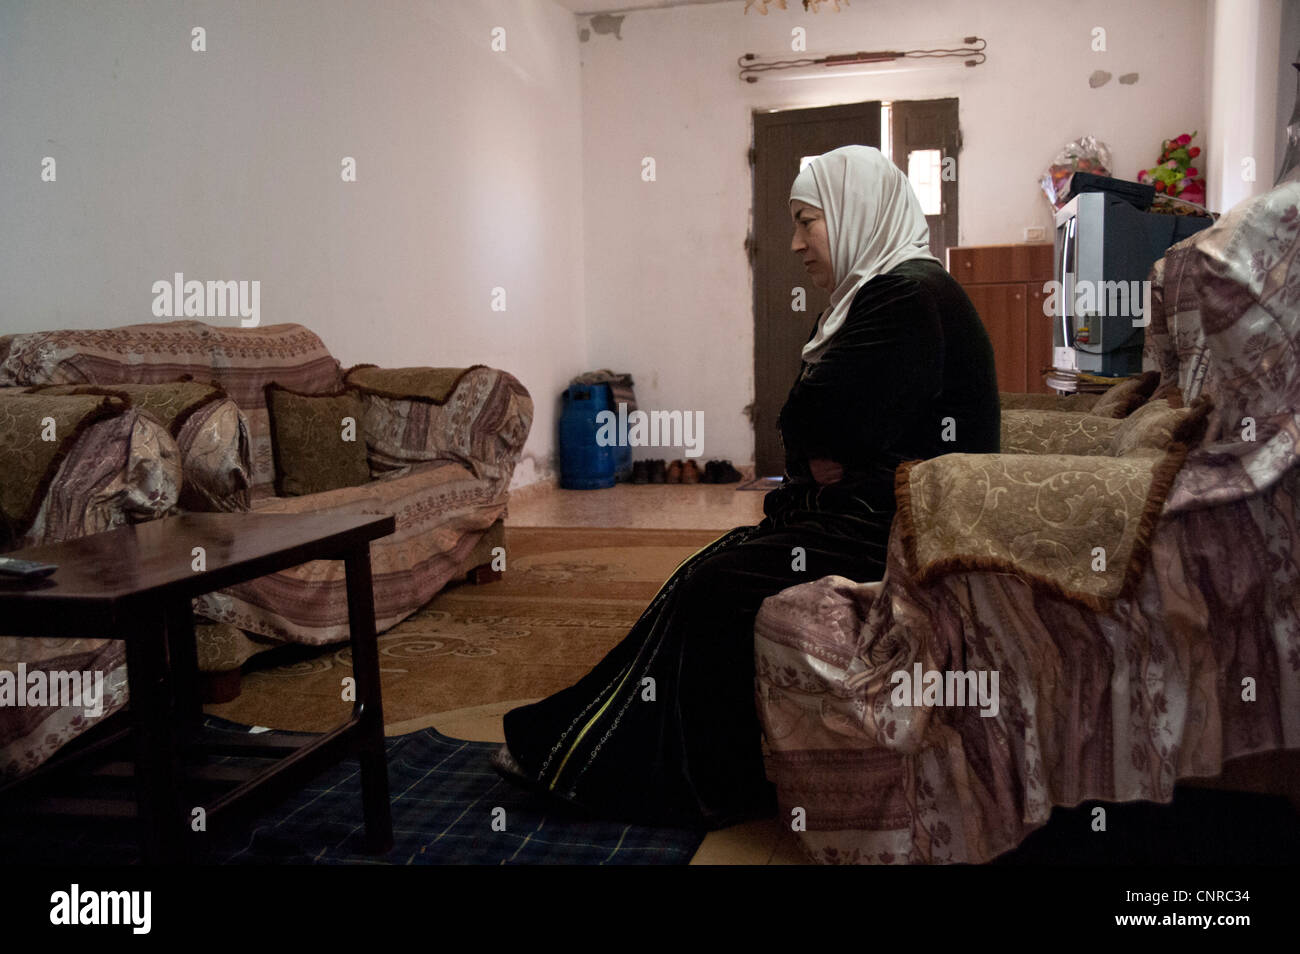 Palestinian villages under repression., A traumatized lady - Stock Image